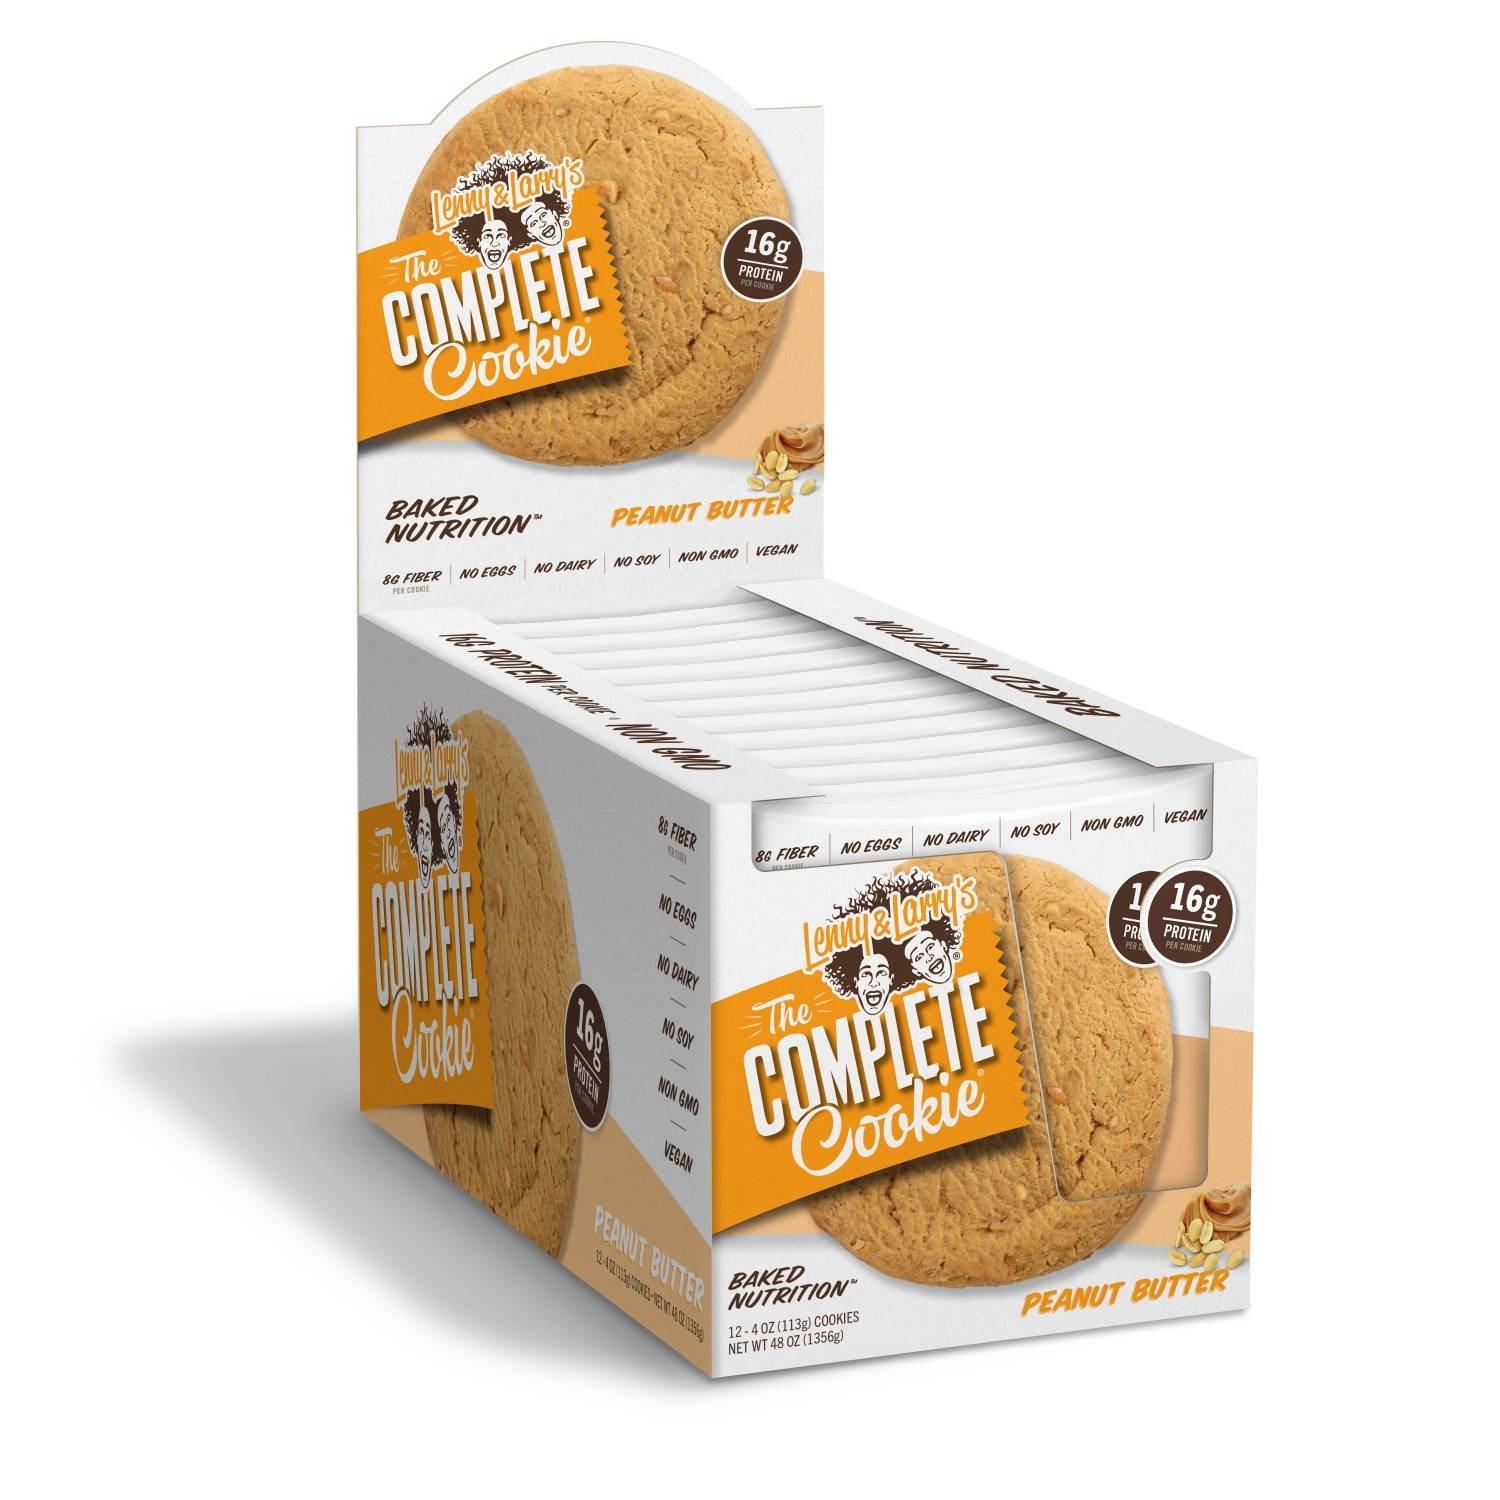 Lenny & Larry's The Complete Cookie! (4 oz. Cookie, Pack of 12, Peanut Butter)